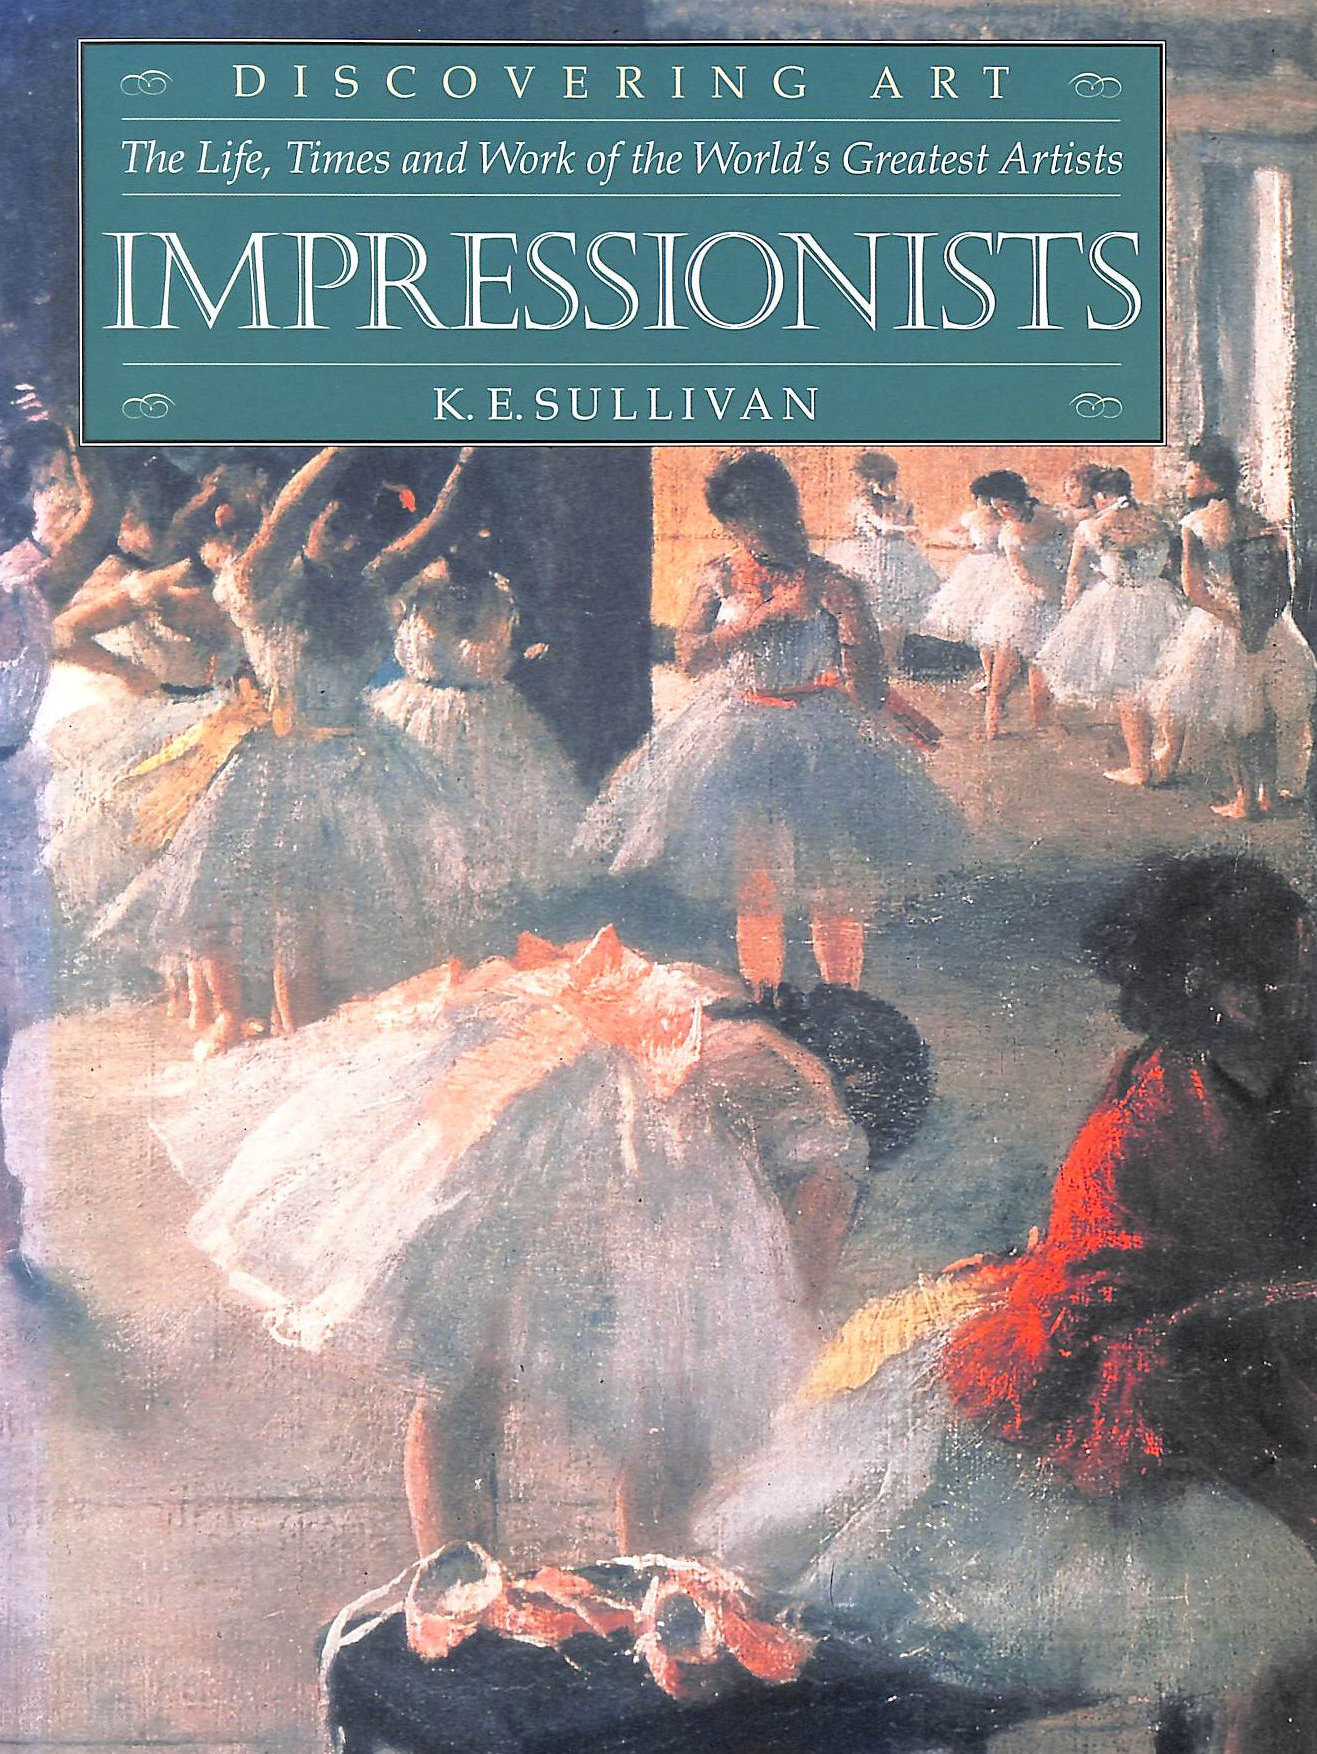 Image for Impressionists (Discovering Art: the Life, Times & Work of the World's Greatest Artists S.)